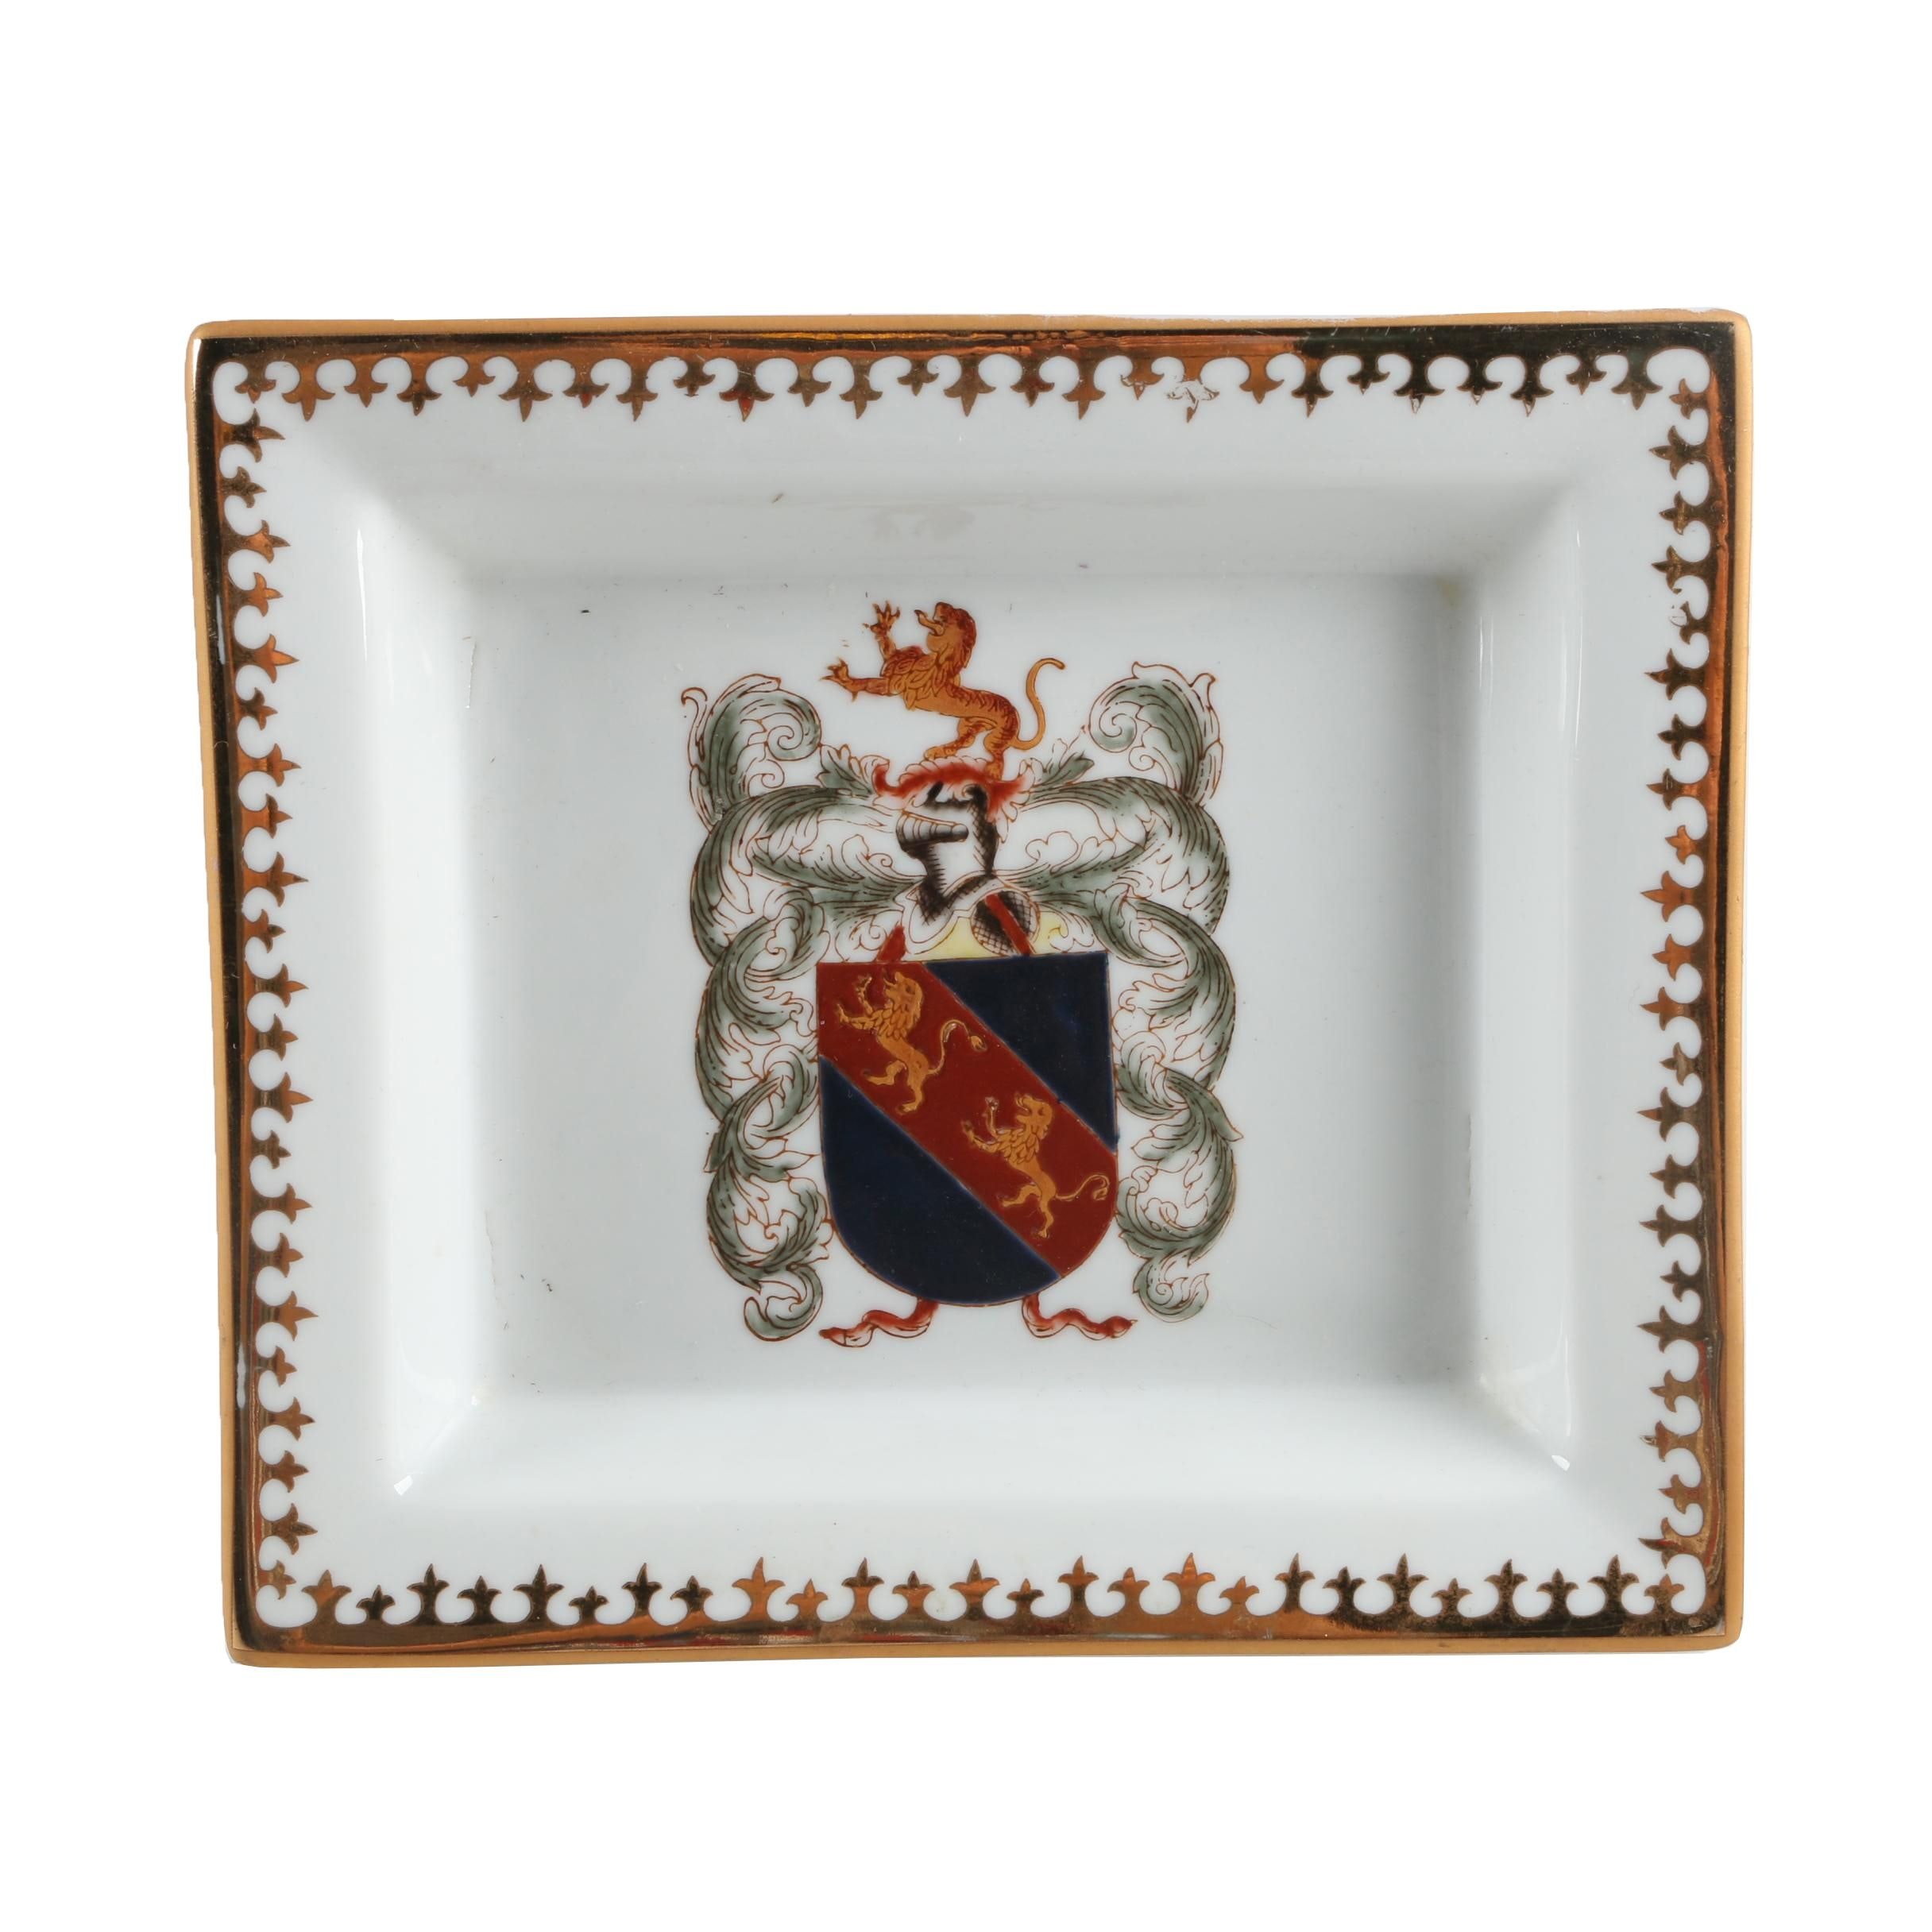 Decorative Chinese Armorial Porcelain Dish